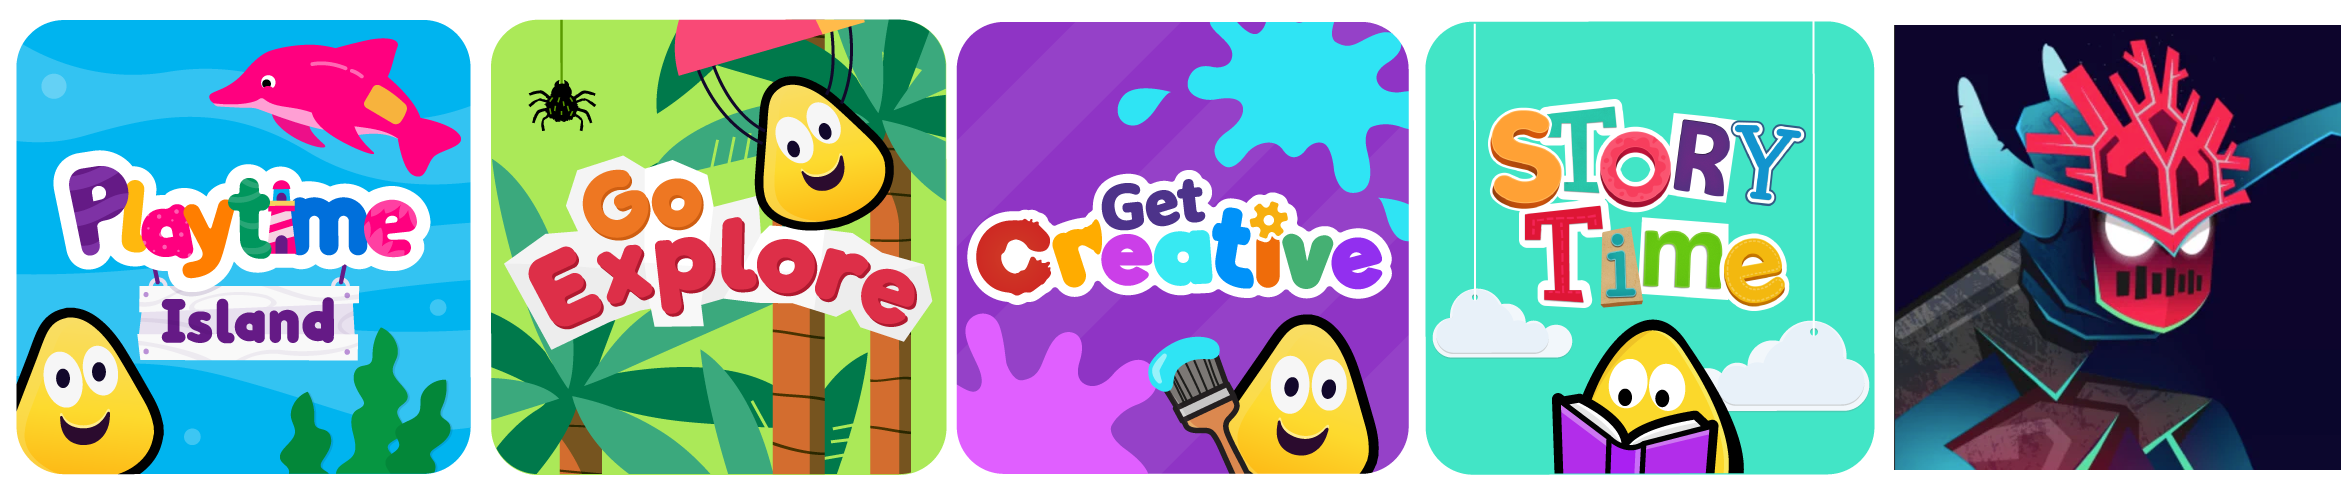 A row of app icons showing Playtime Island, Go Explore, Get Creative, Storytime and Nightfall.